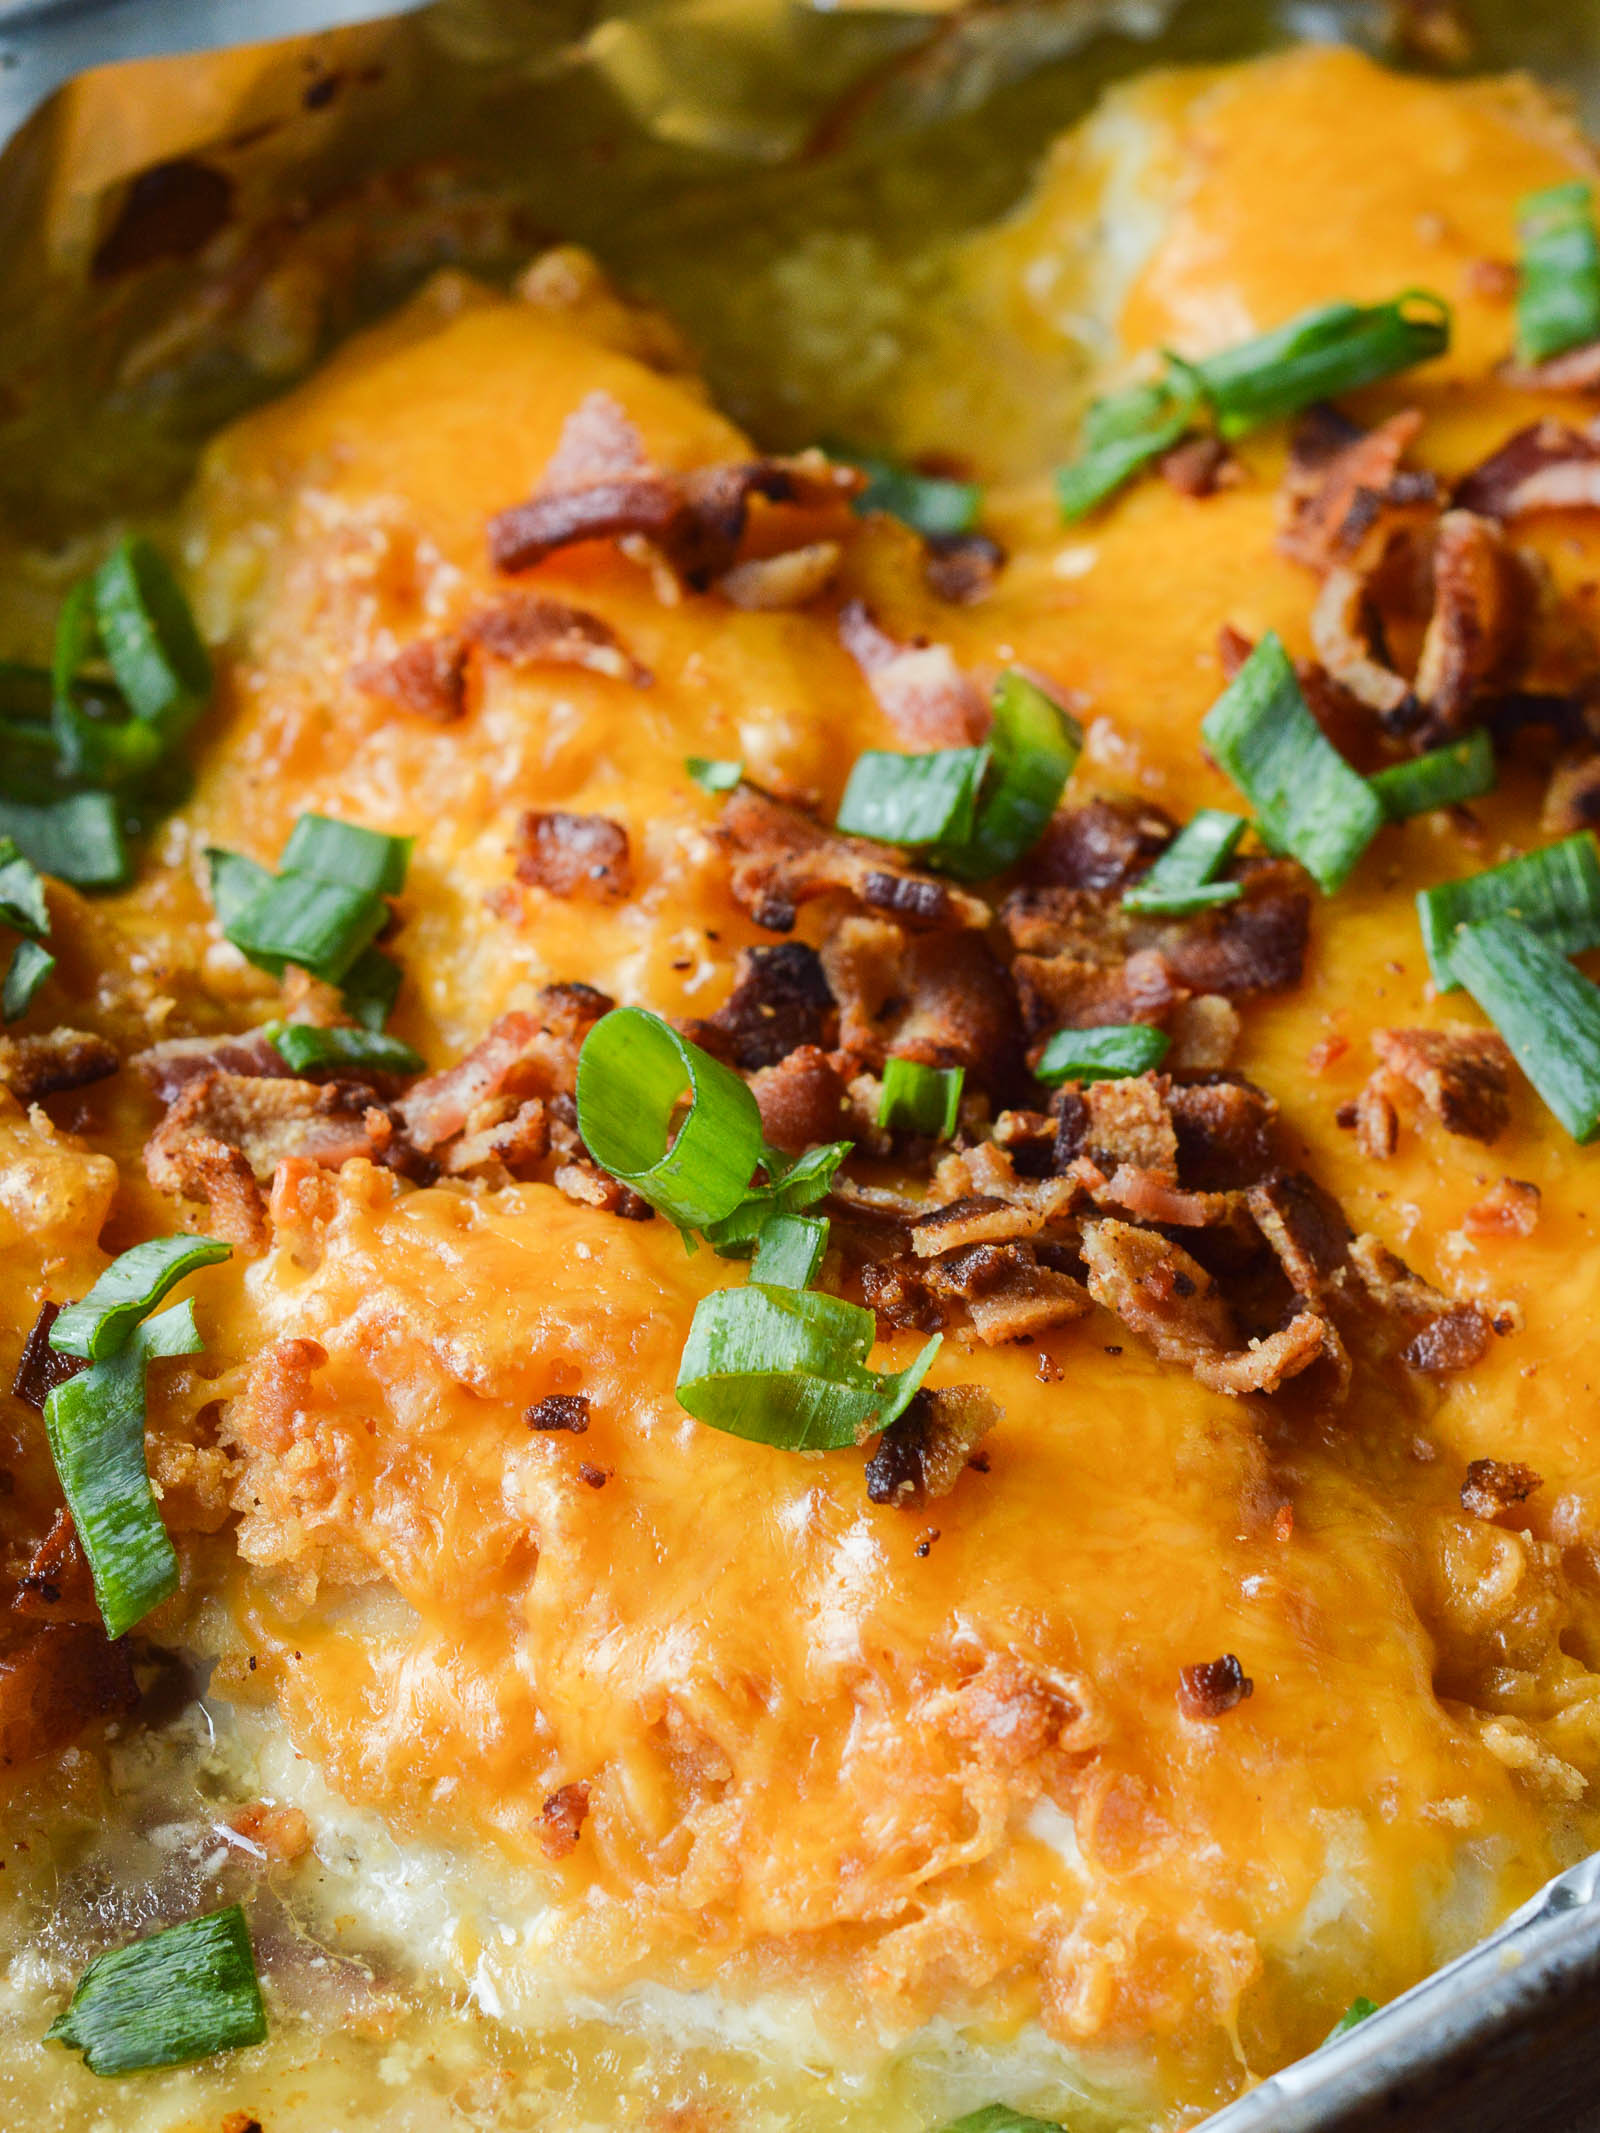 Baked chicken breasts in a foil-lined pan smothered in cheese, bacon, and green onions.